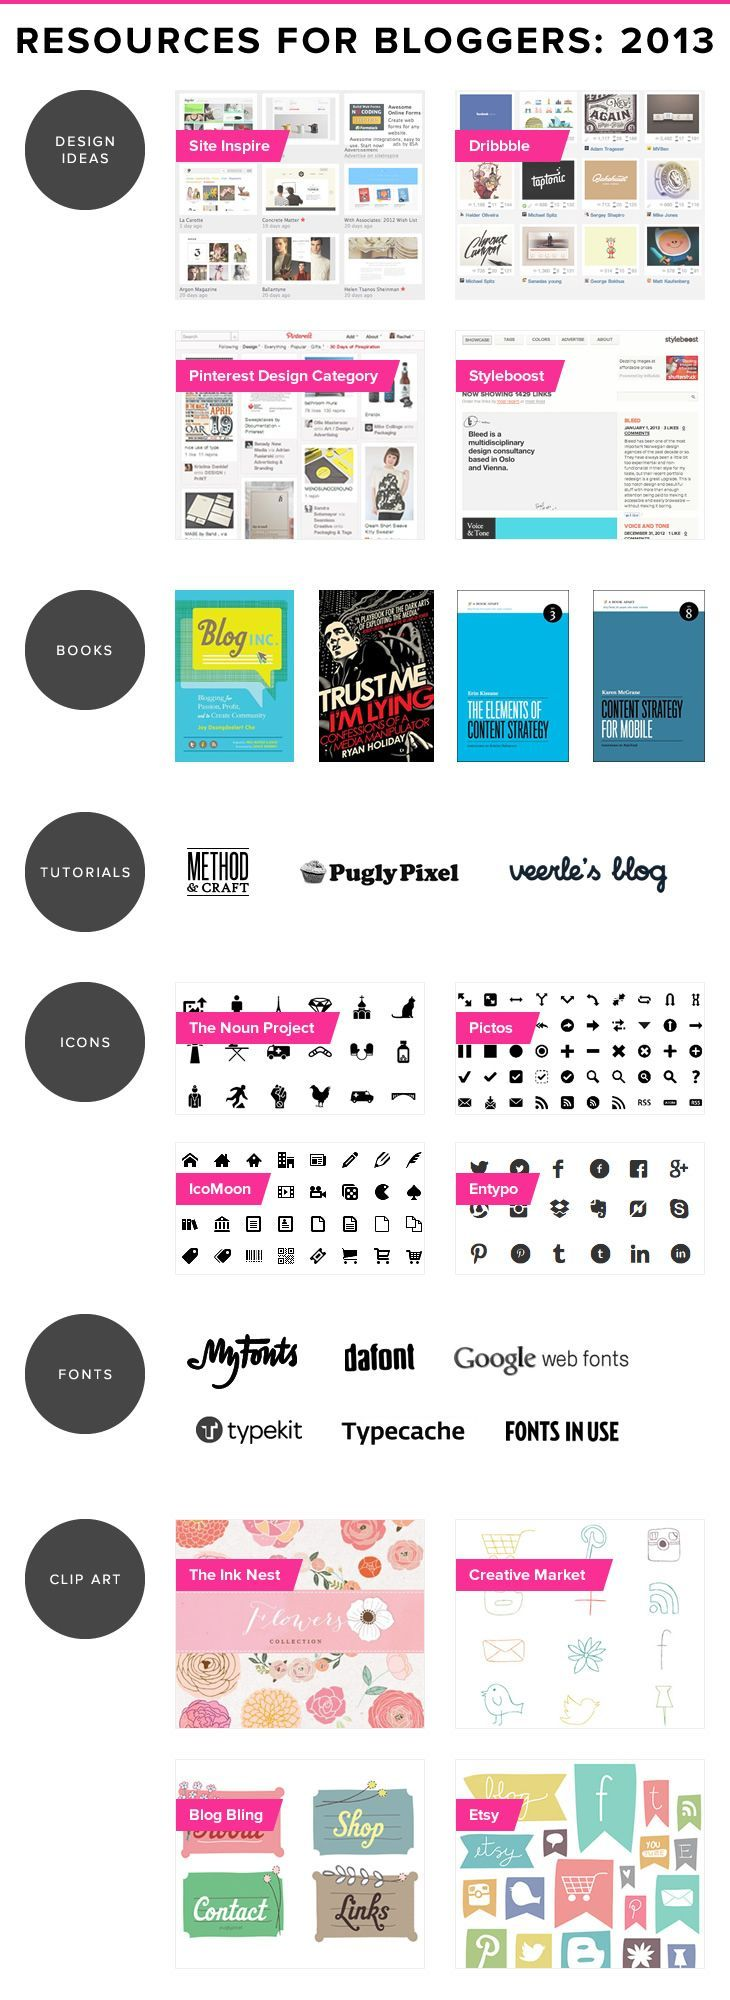 Blog Design Resources for 2013: ideas, books, tutorials, icons, fonts, clip art.